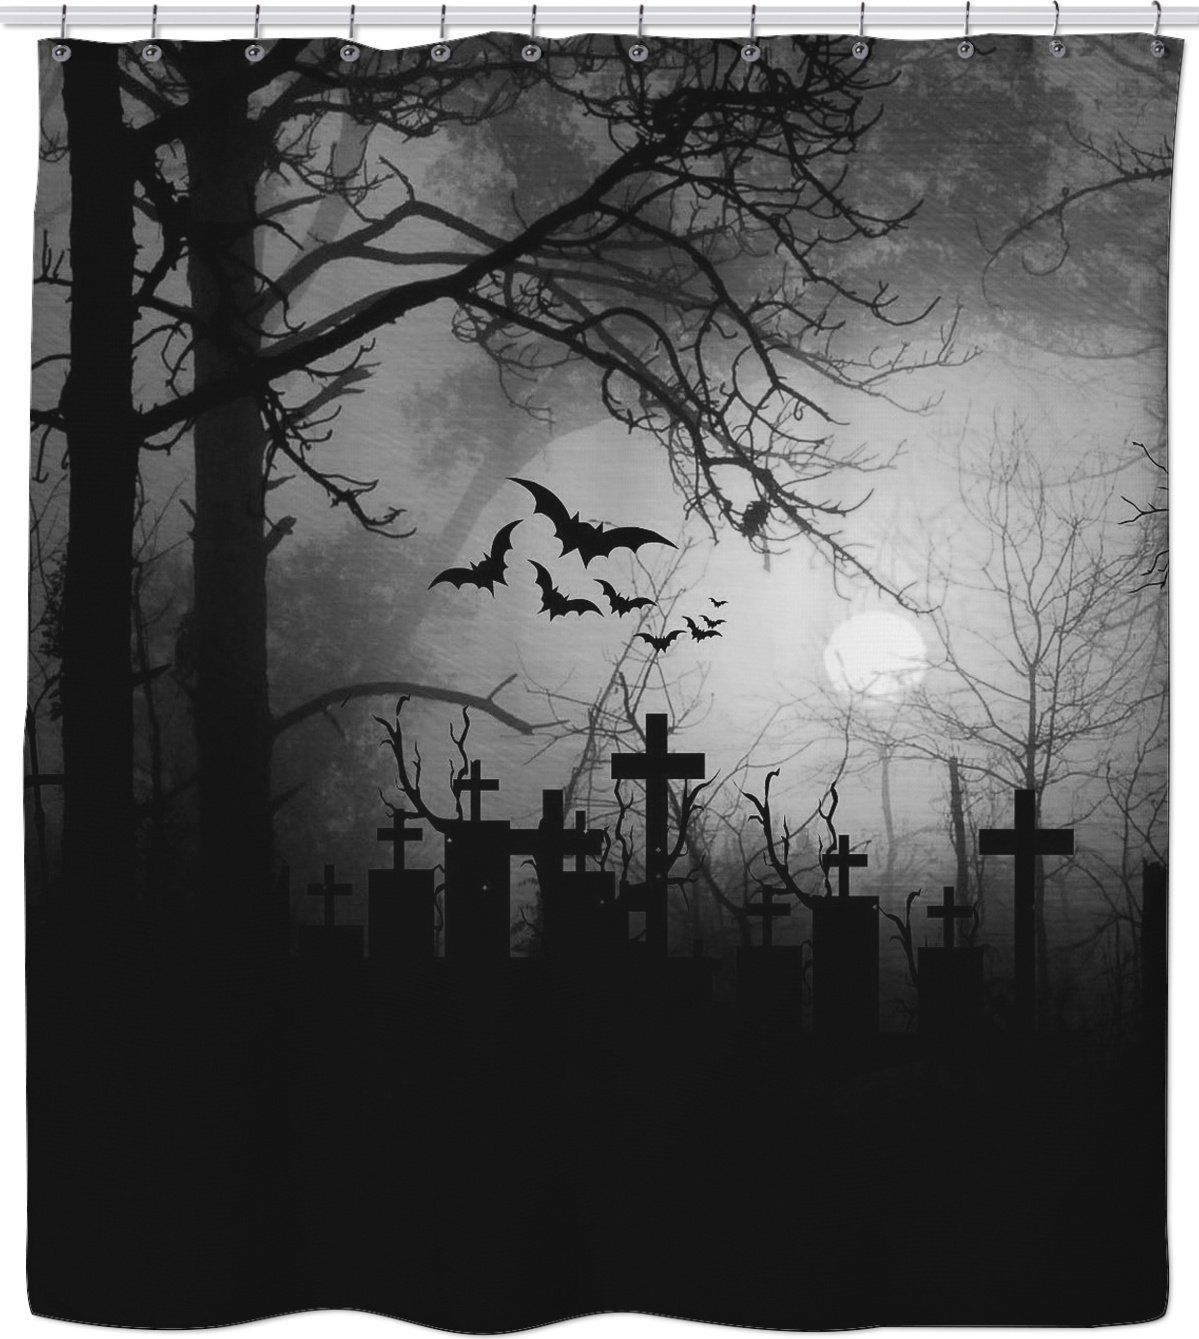 Inked Boutique Graveyard Shower Curtain Cemetery Spooky Creepy